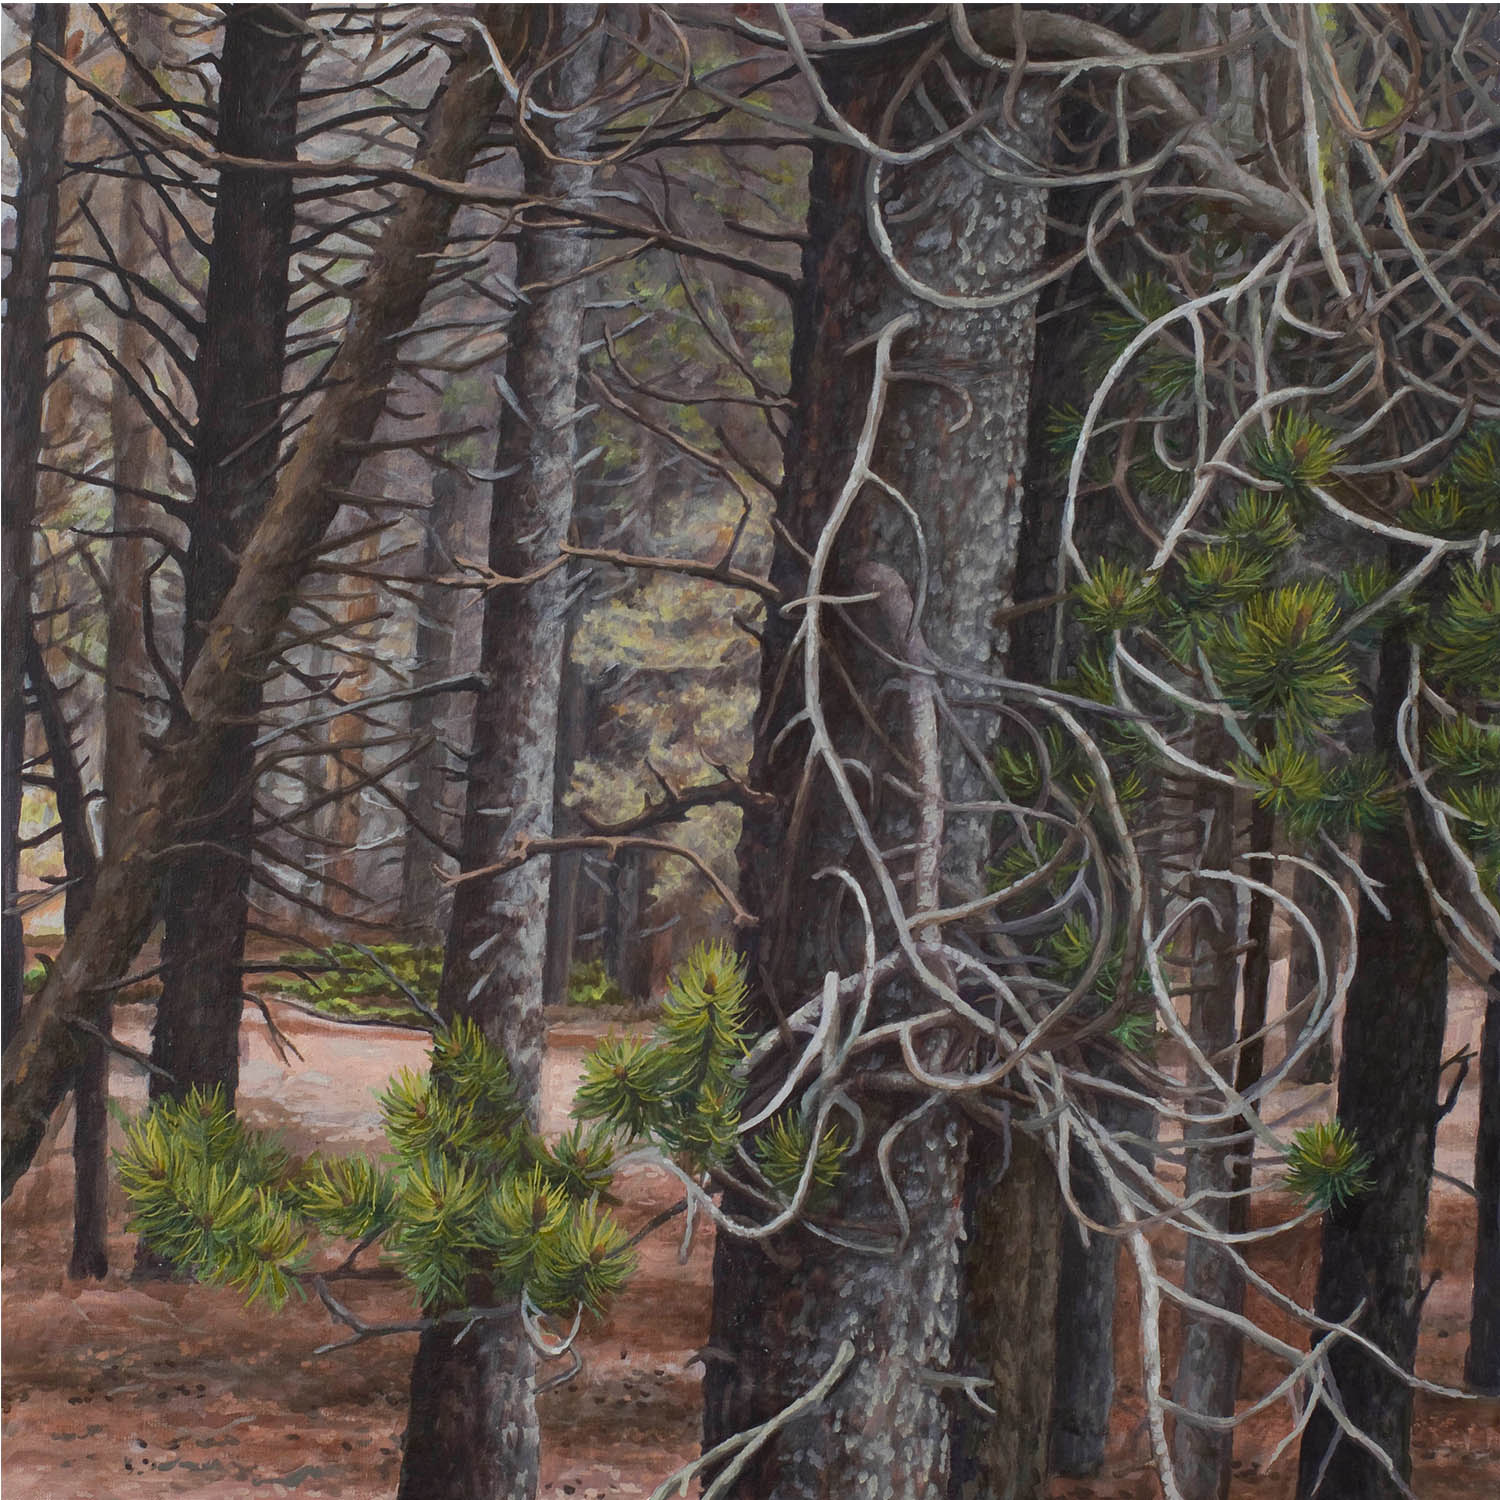 """Lodgepole series #1: Oil on linen canvas over panel 30"""" x 30"""" 2012"""